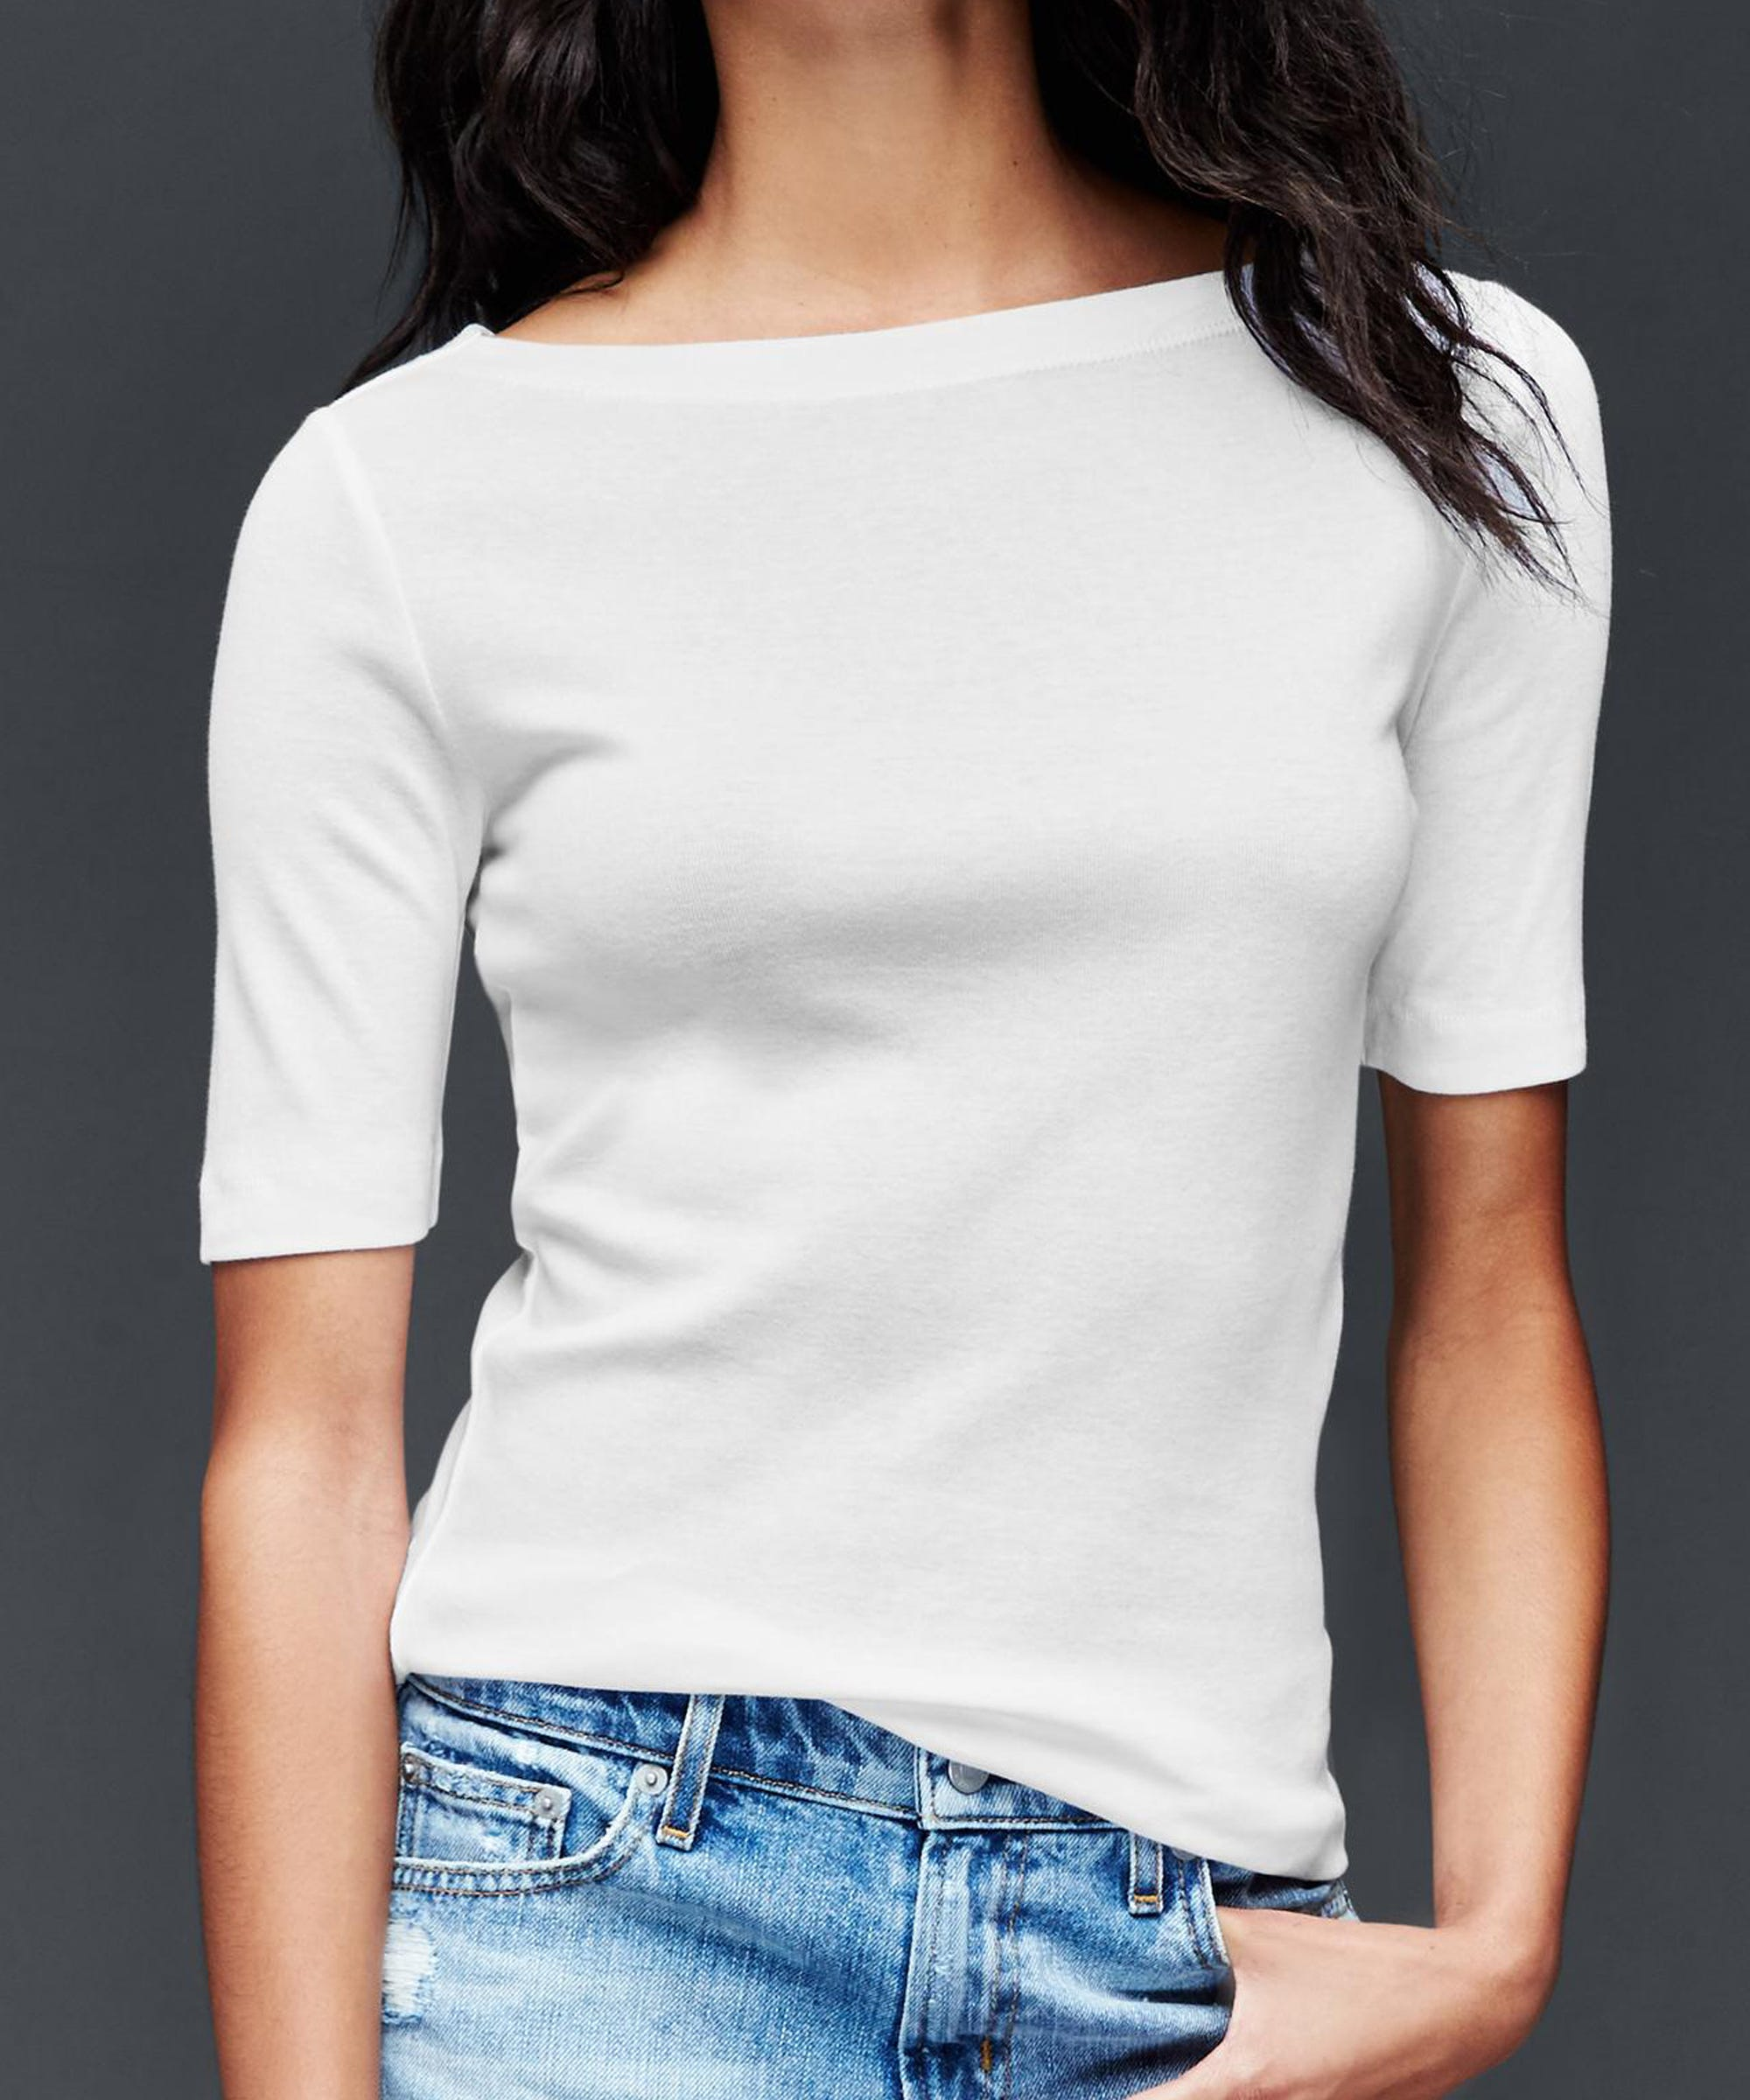 Best non see through white t shirt full coverage tees for Who makes the best white t shirts